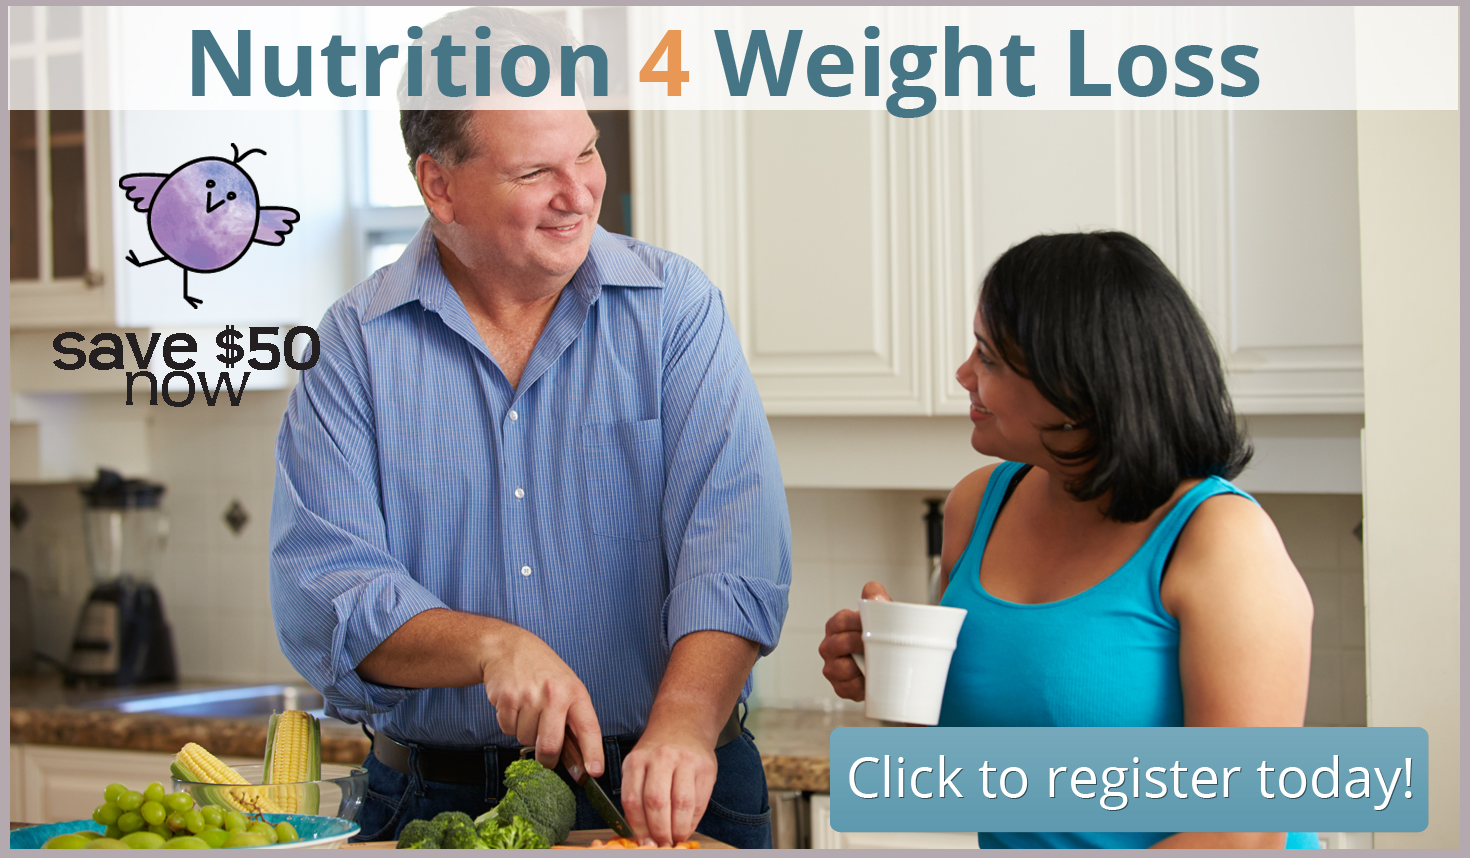 Nutrition 4 Weight Loss